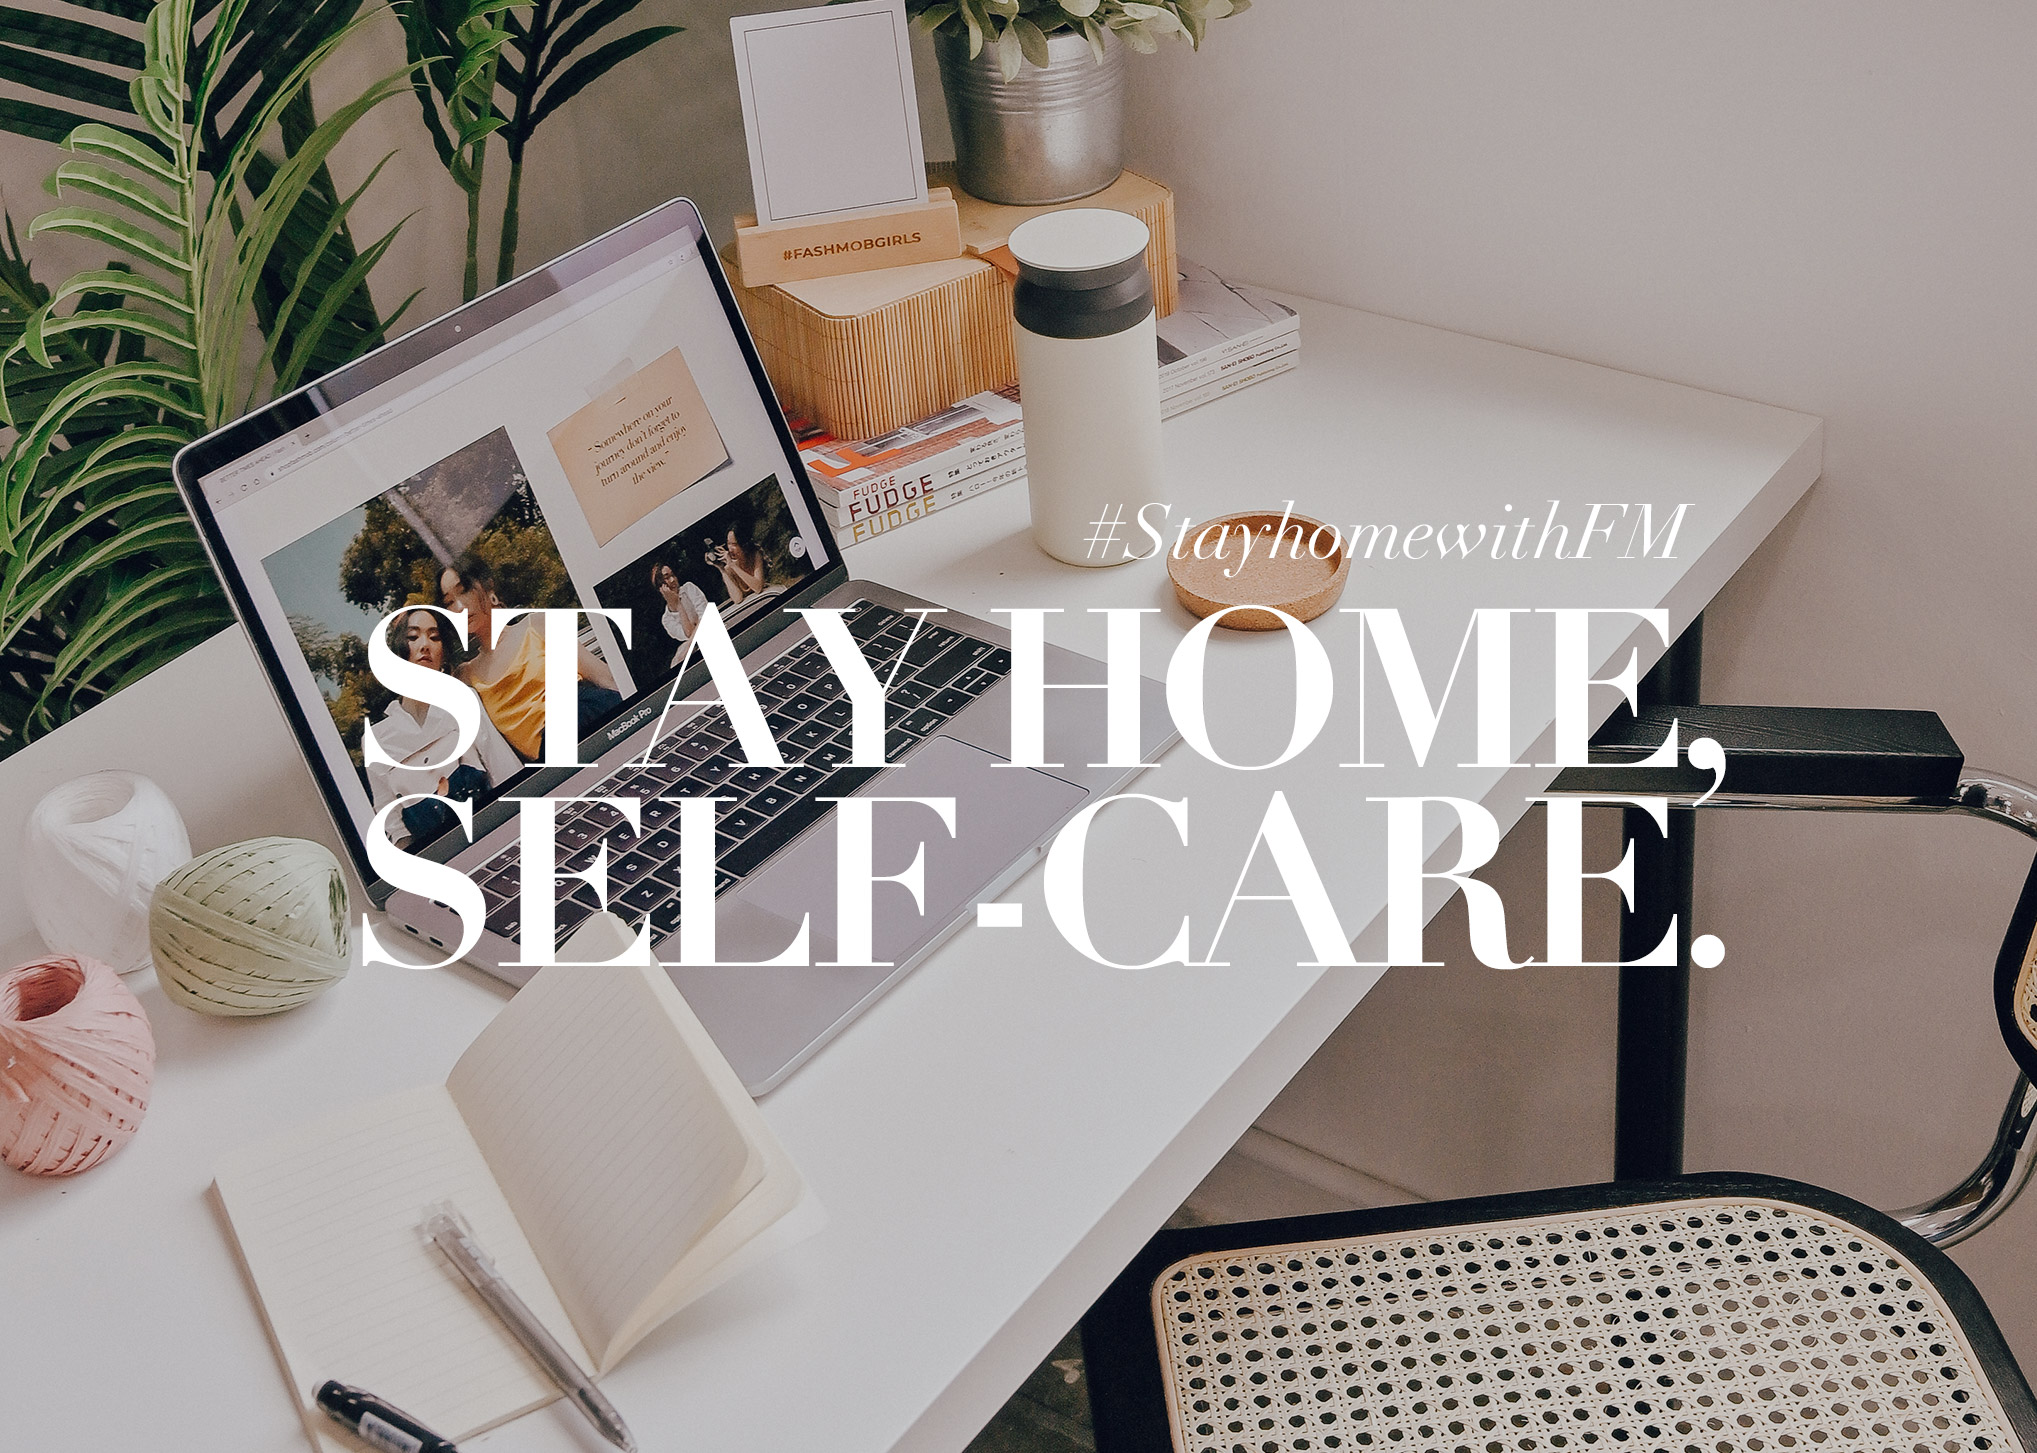 STAY HOME, SELF-CARE